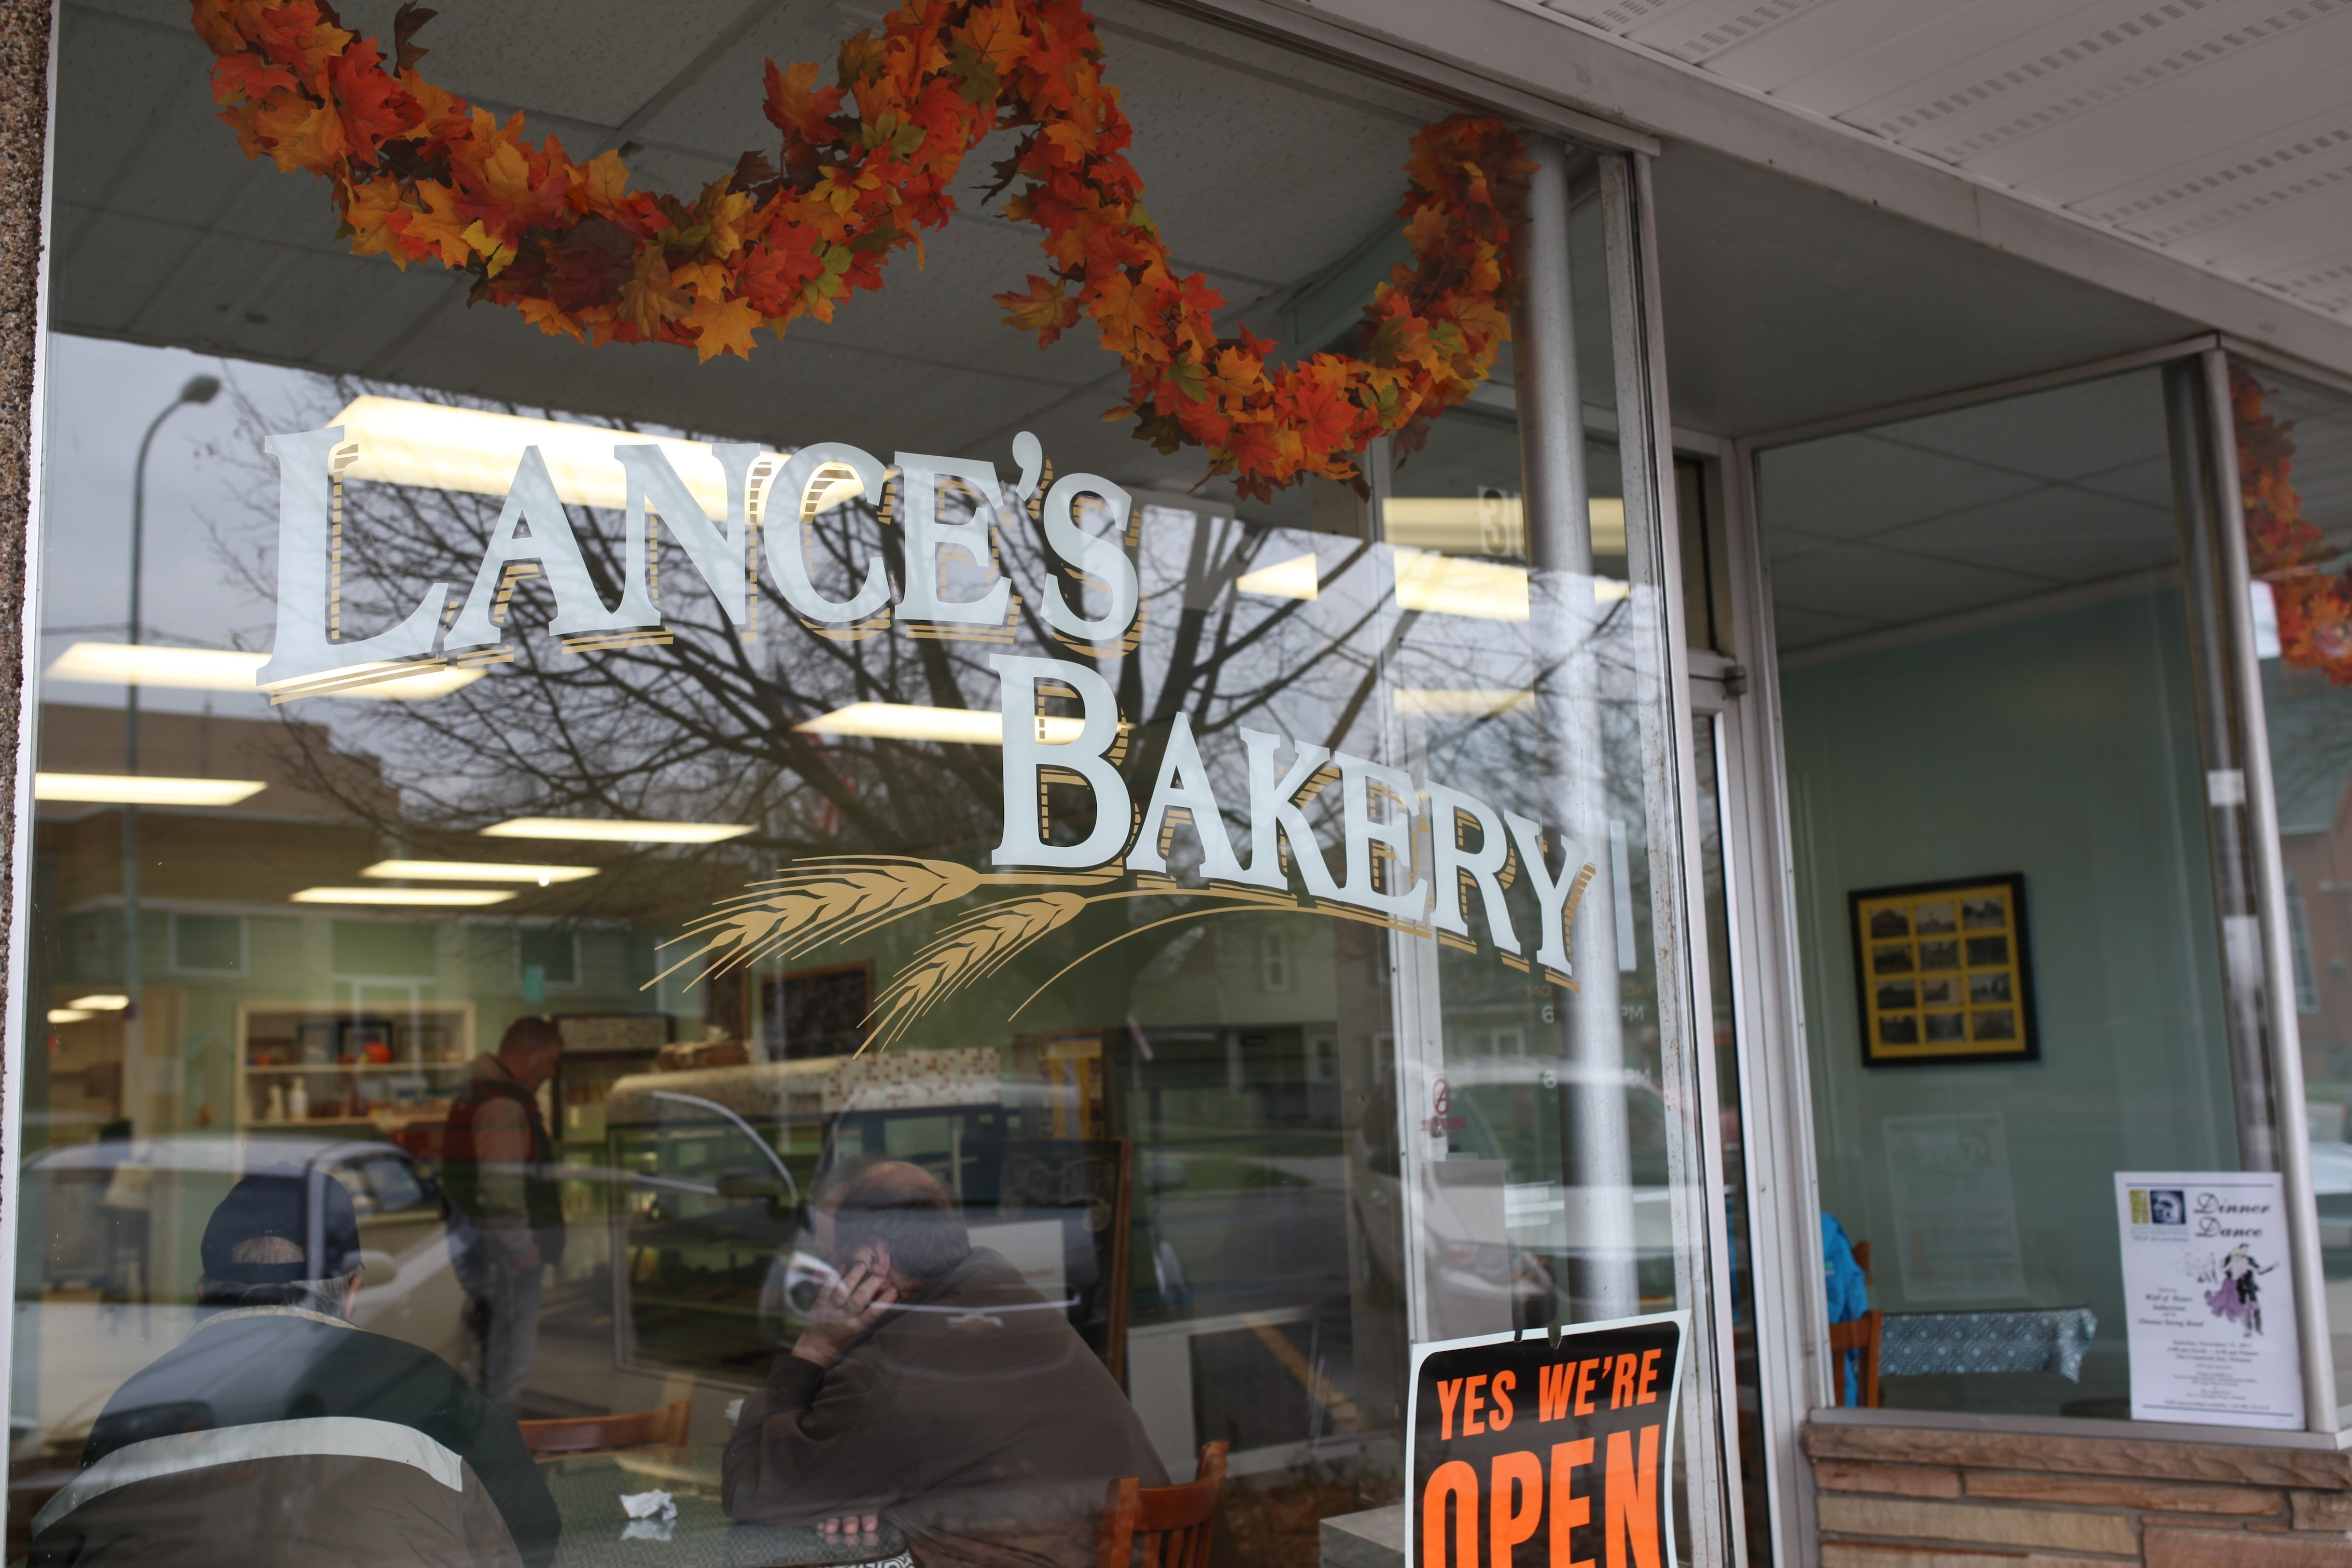 Lance's bakery front